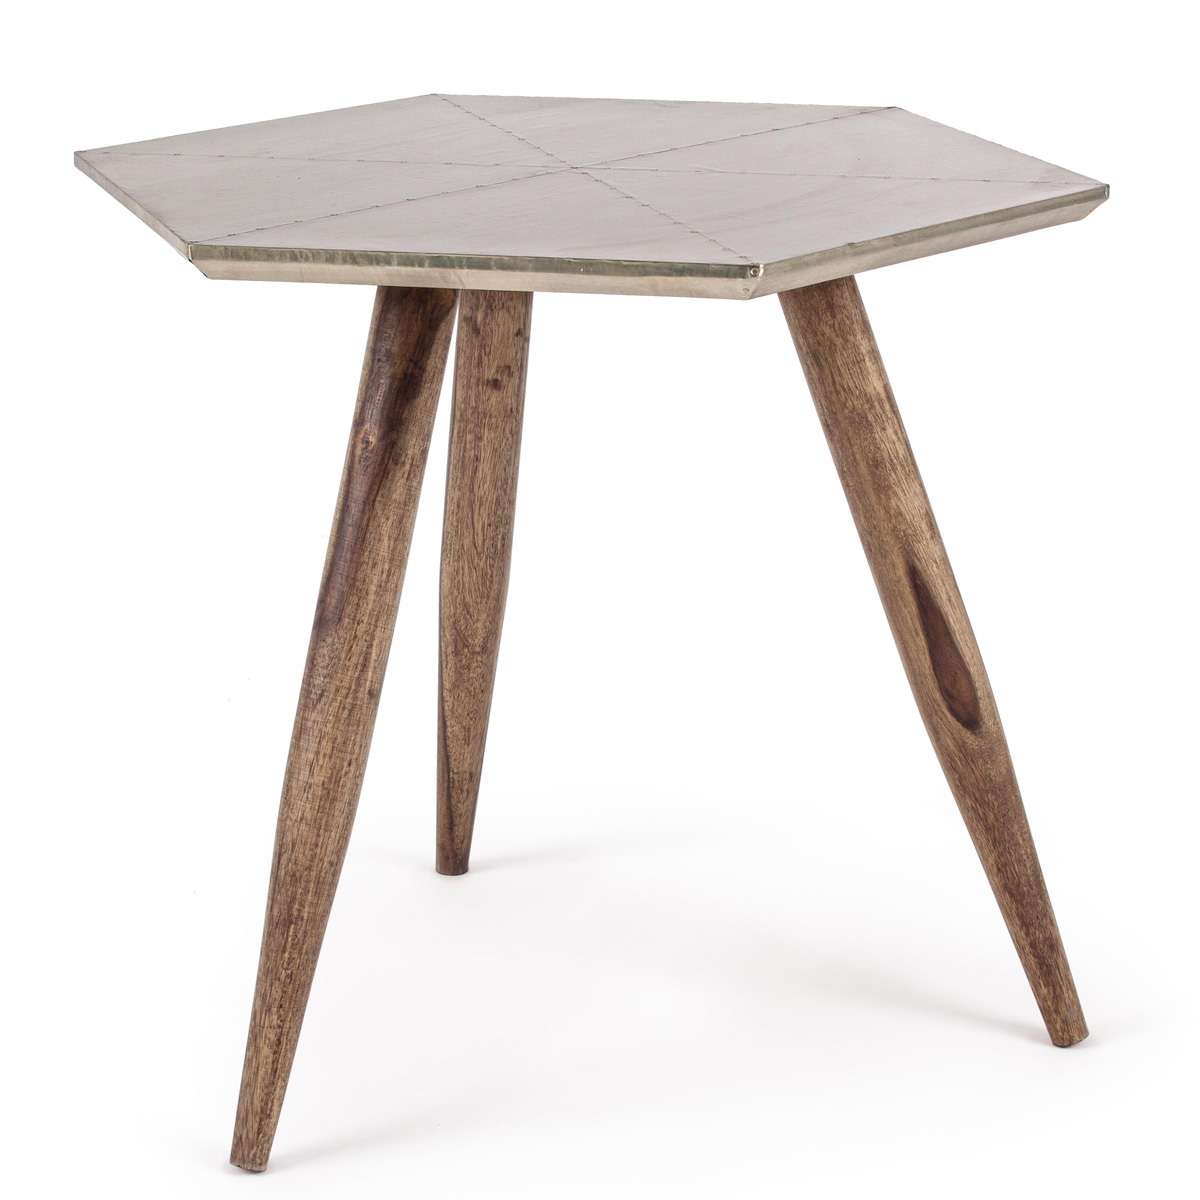 Photos 1: Bizzotto Wooden table with metal floor 0745456